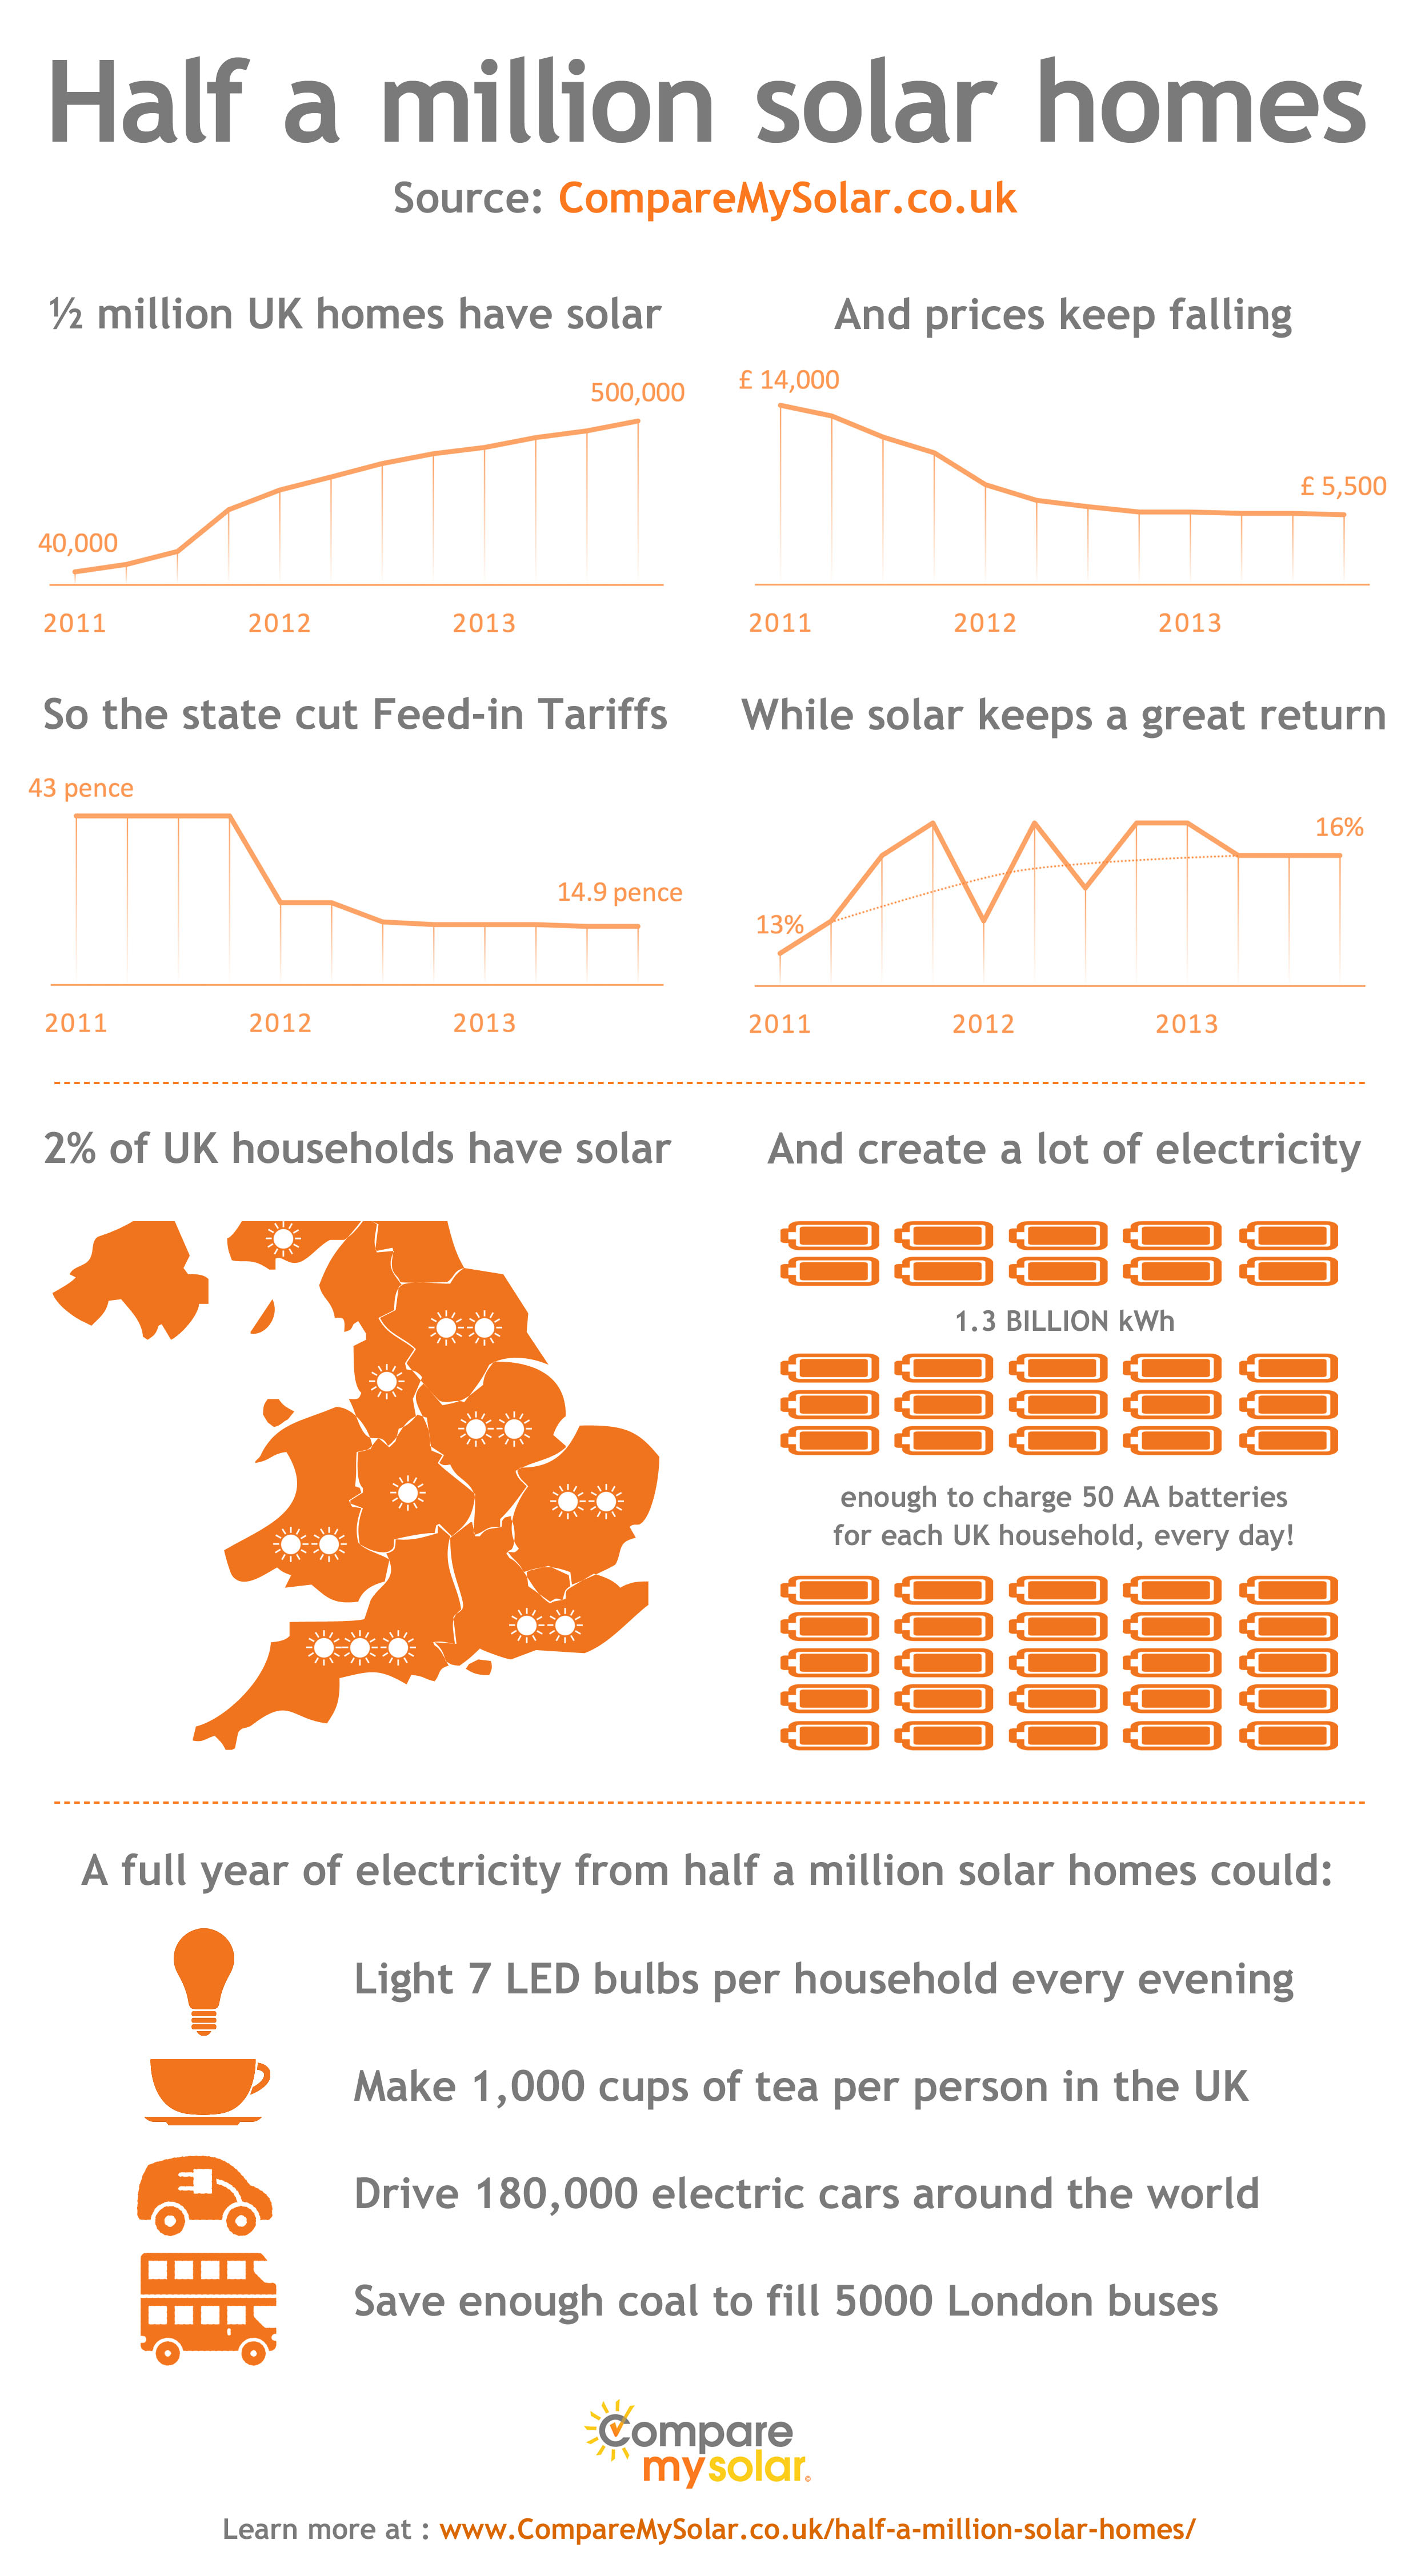 www comparemysolar co uk_images_halfamillionsolarhomes